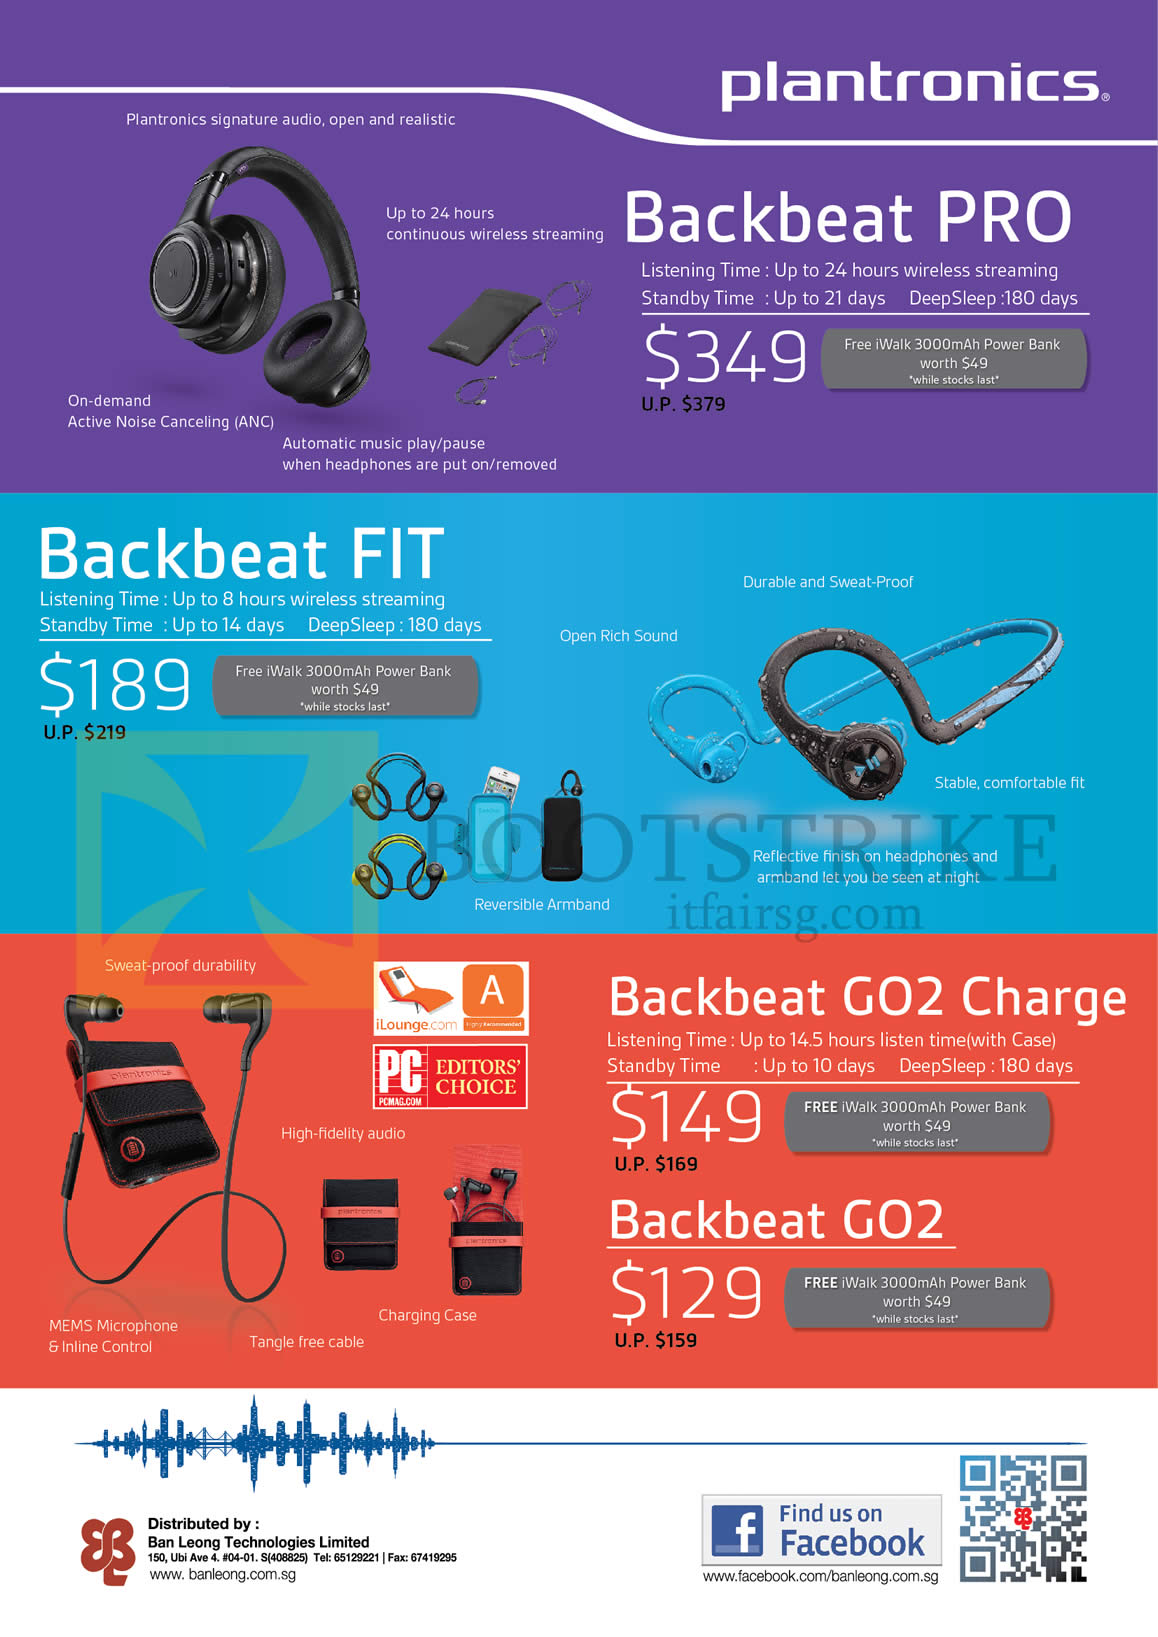 PC SHOW 2015 price list image brochure of Plantronics Bluetooth Headsets Backbeat Pro, Fit, Go2 Charge, Go2